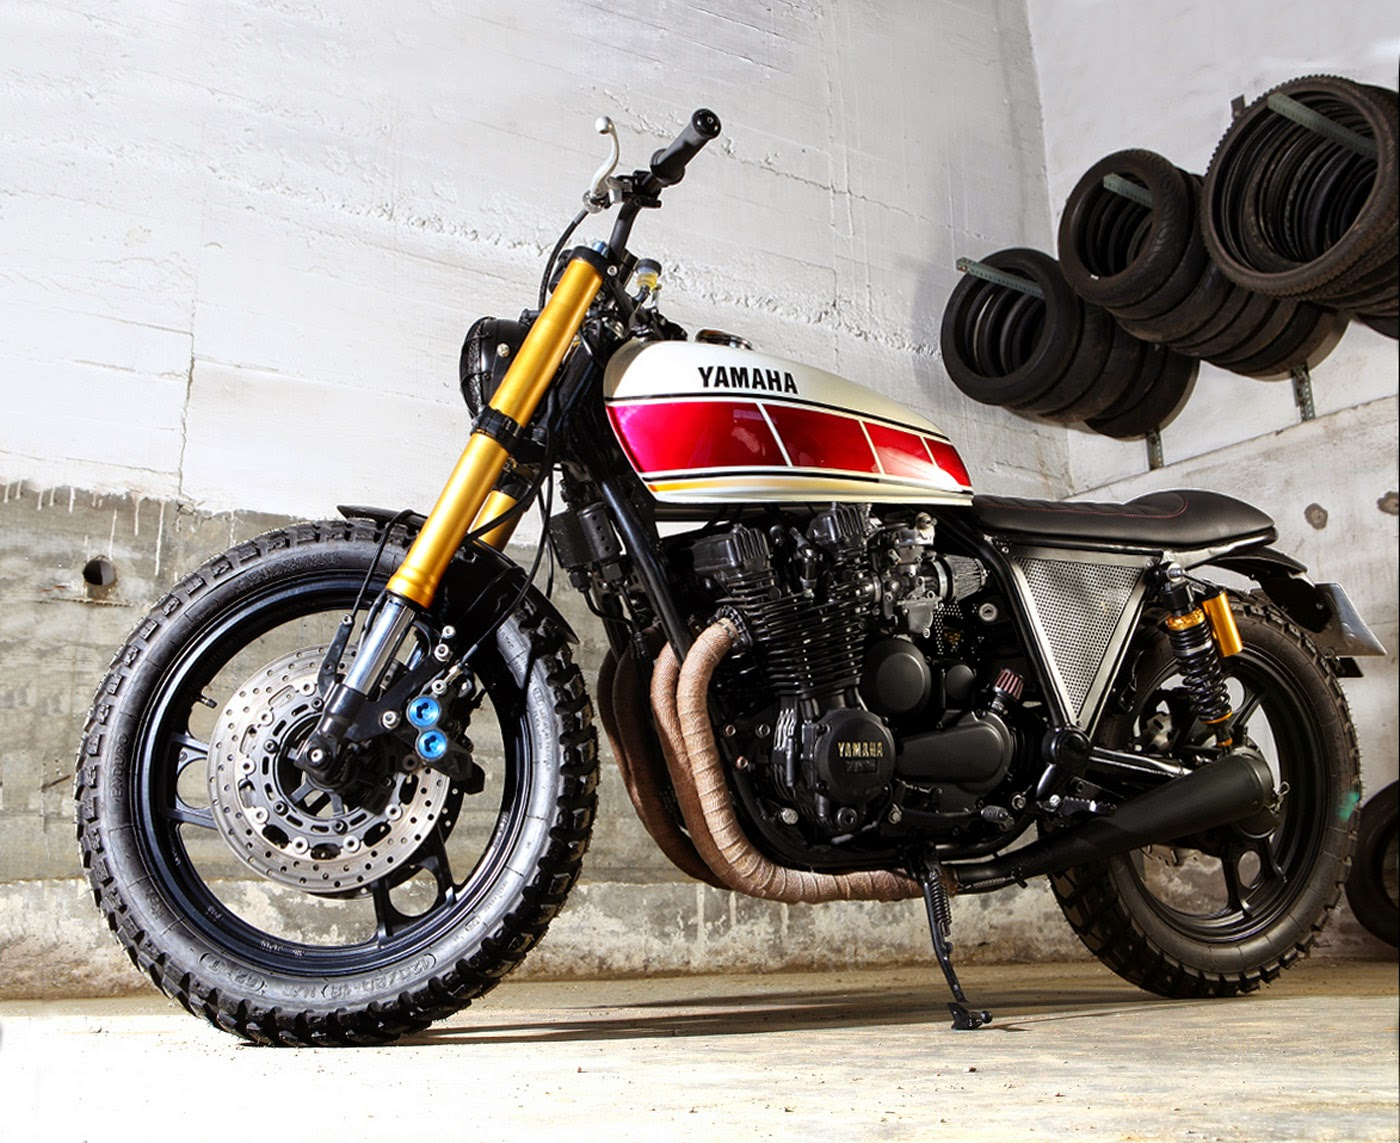 Custom Yamaha Xj 900 Custom Yamaha XJ 900 Scrambler a custom bike from the Tarmac Custom Motorcycles in Spain. This Custom bike stared with a 1986 Yamaha Xj 900 as a base. The Guys at TMC Stripped this Yamaha Xj 900 to essentials. They were not happy with the plastics surrounding this 900cc Japanese machine. The Original take was replaced with Kawasaki Kz650, Gas tank and was painted in retro Yamaha Race livery. The Front suspension and the brakes were borrowed from Yamaha R1.  A Custom Headlamp Grill adds charm, The rear sub Frame was modified to accommodate The custom seat and Handle bar risers was Machined to fit the new Renthal handle bar and quick throttle. The engine was un-touched but a battery and a cdi unit was replaced. Enduro type tires on the stock XJ900 gives it a muscled looks. Custom Yamaha Xj 900 was completed with a set of reverse cone Megaphones to give a nice sound and a vintage appeal. This Custom Yamaha Xj 900 is surely a head turner.